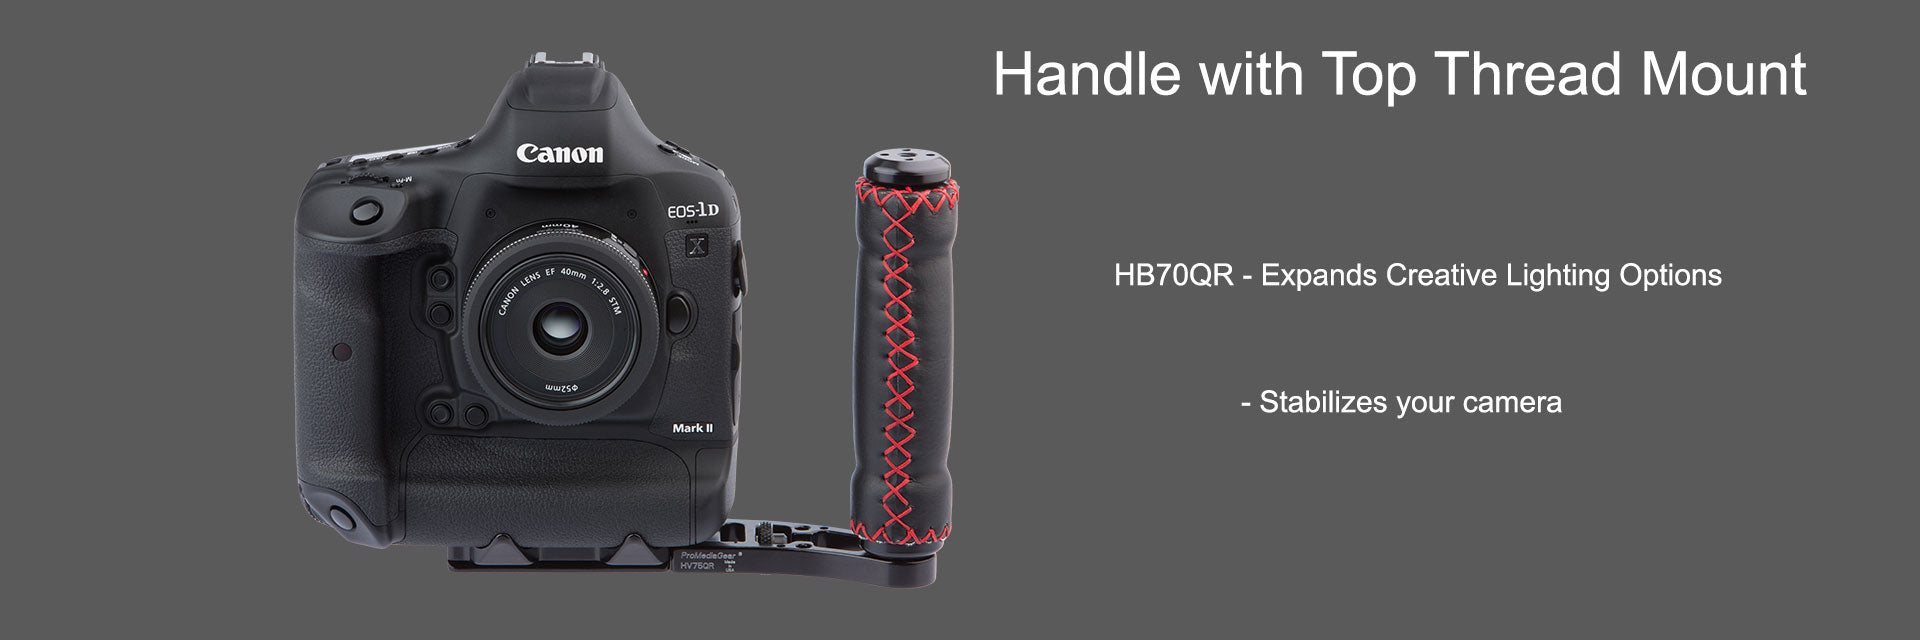 Accessory and Stabilizer Handle for DSLR